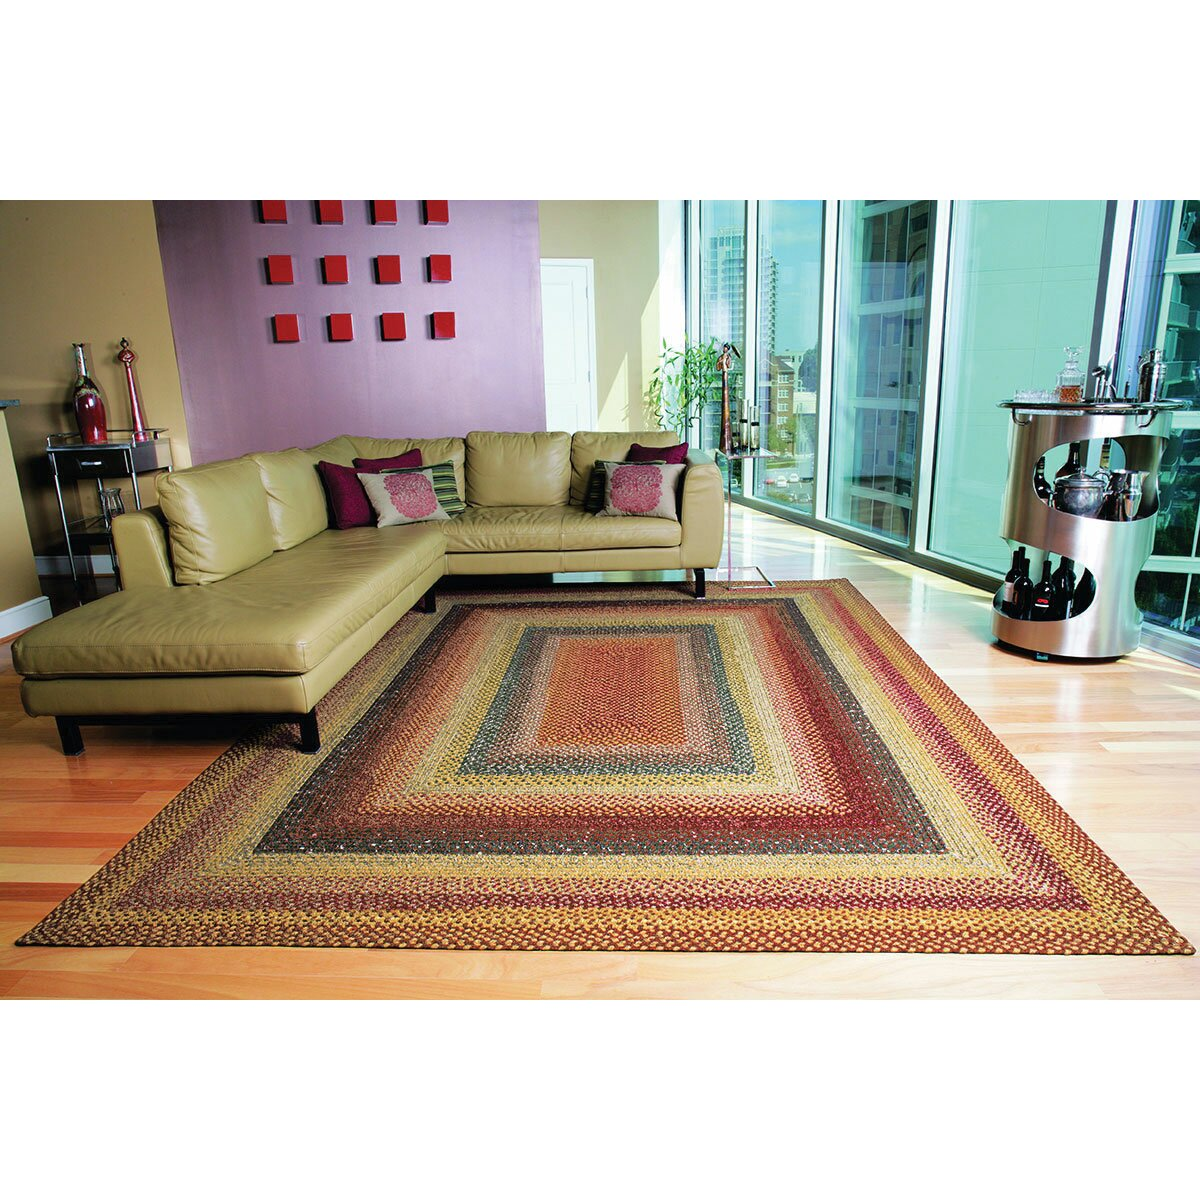 Homespice Decor Cotton Braided Four In Nine Patch Area Rug